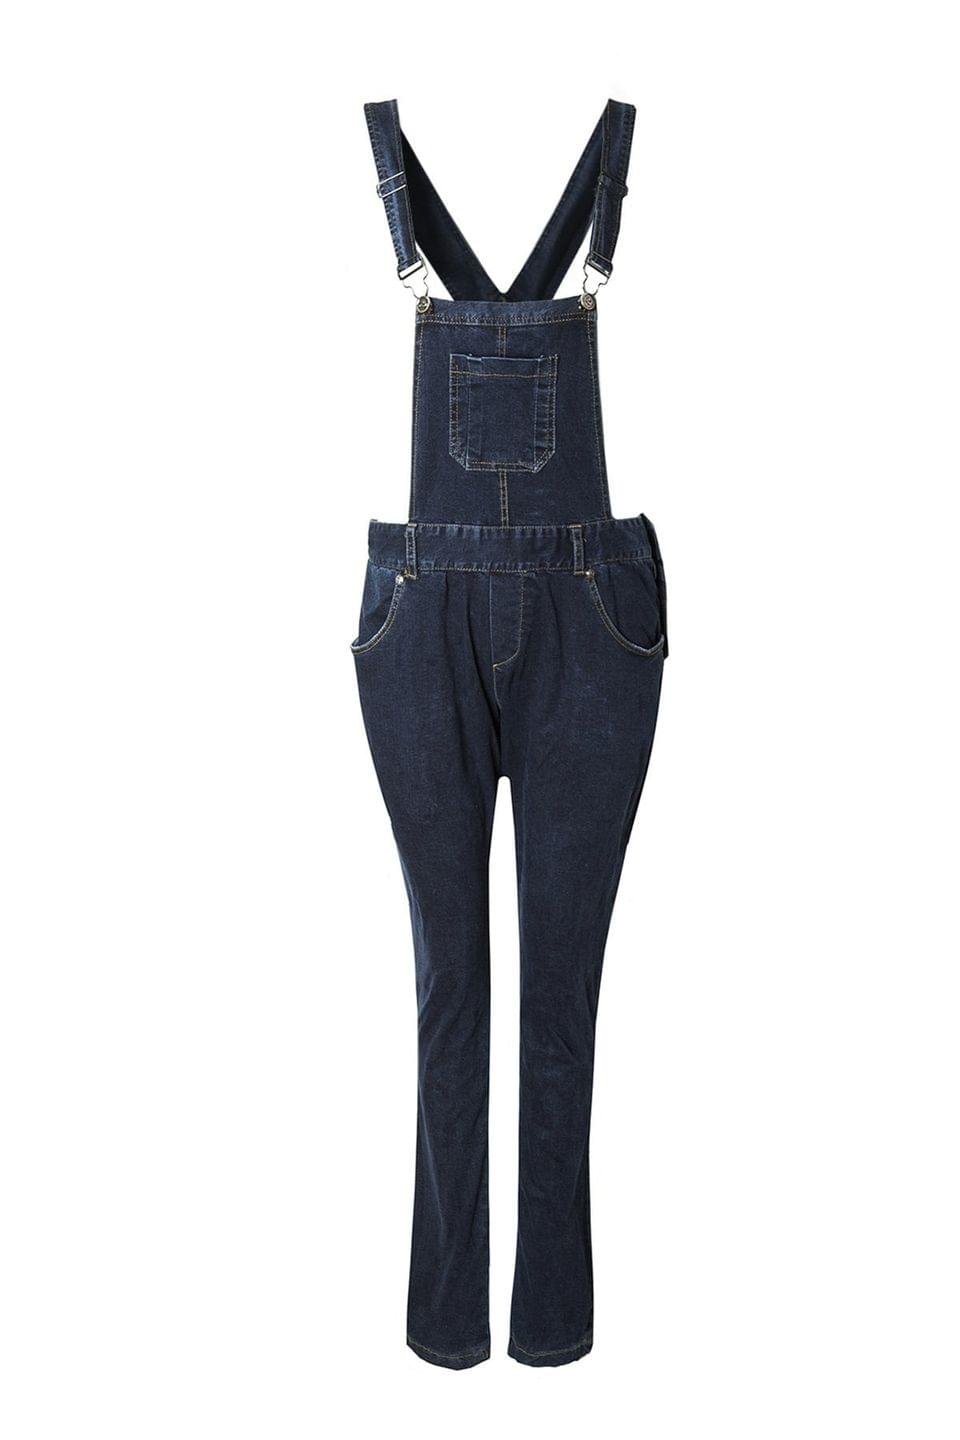 Women's Blue Black Denim Dungarees - Deep Blue S